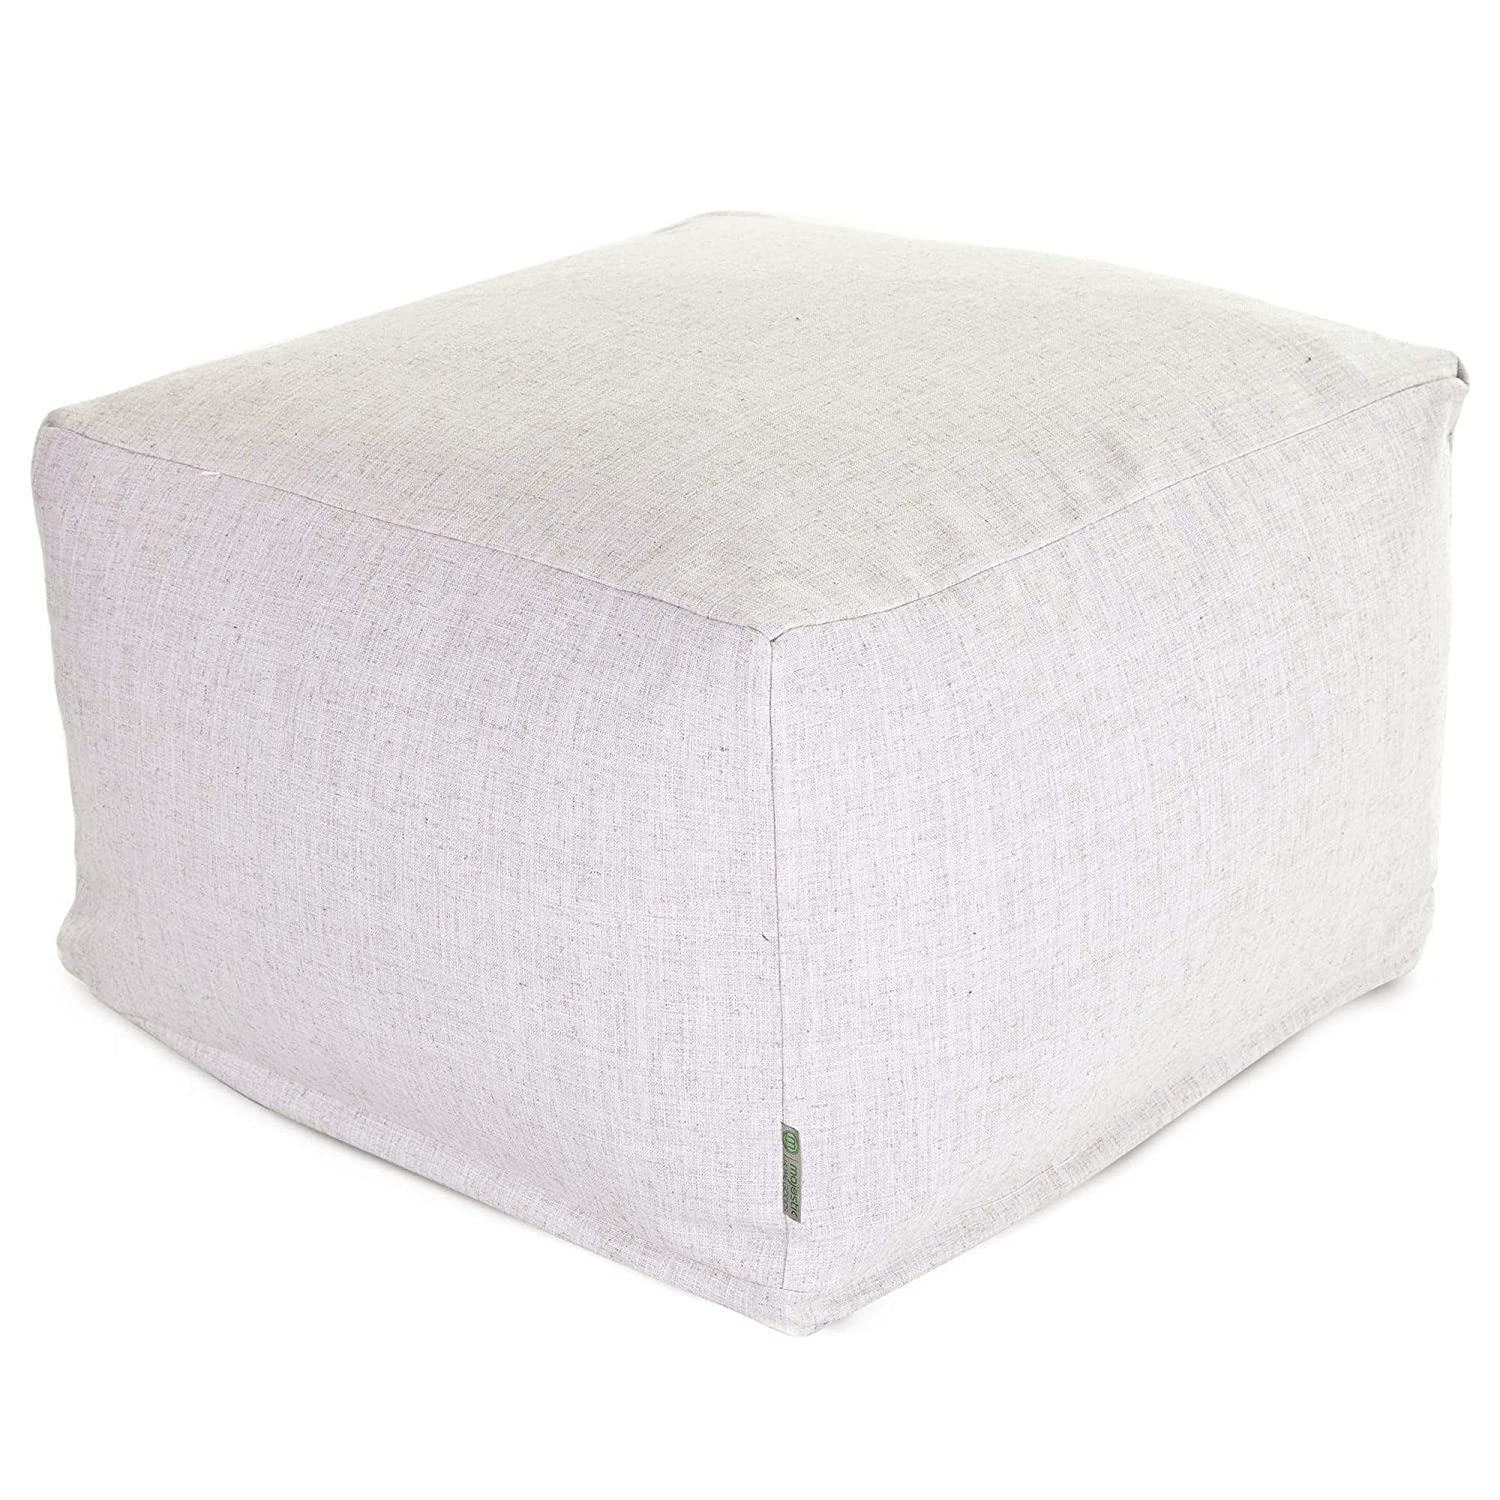 Majestic Home Goods Wales Ottoman, Large,Magnolia